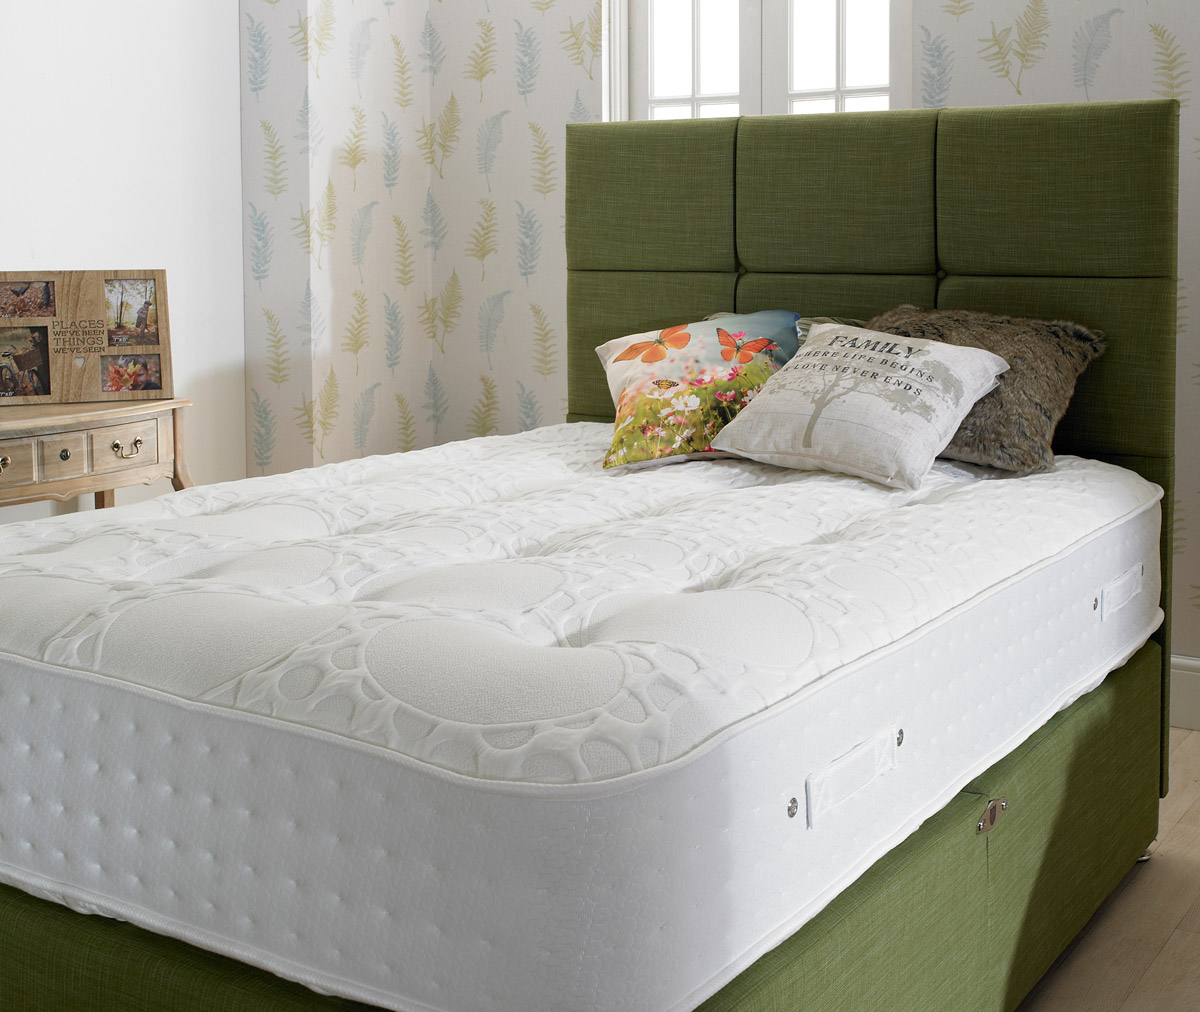 Shire Eco Grand Anti Bug 4000 Pocket Sprung Mattress from £389